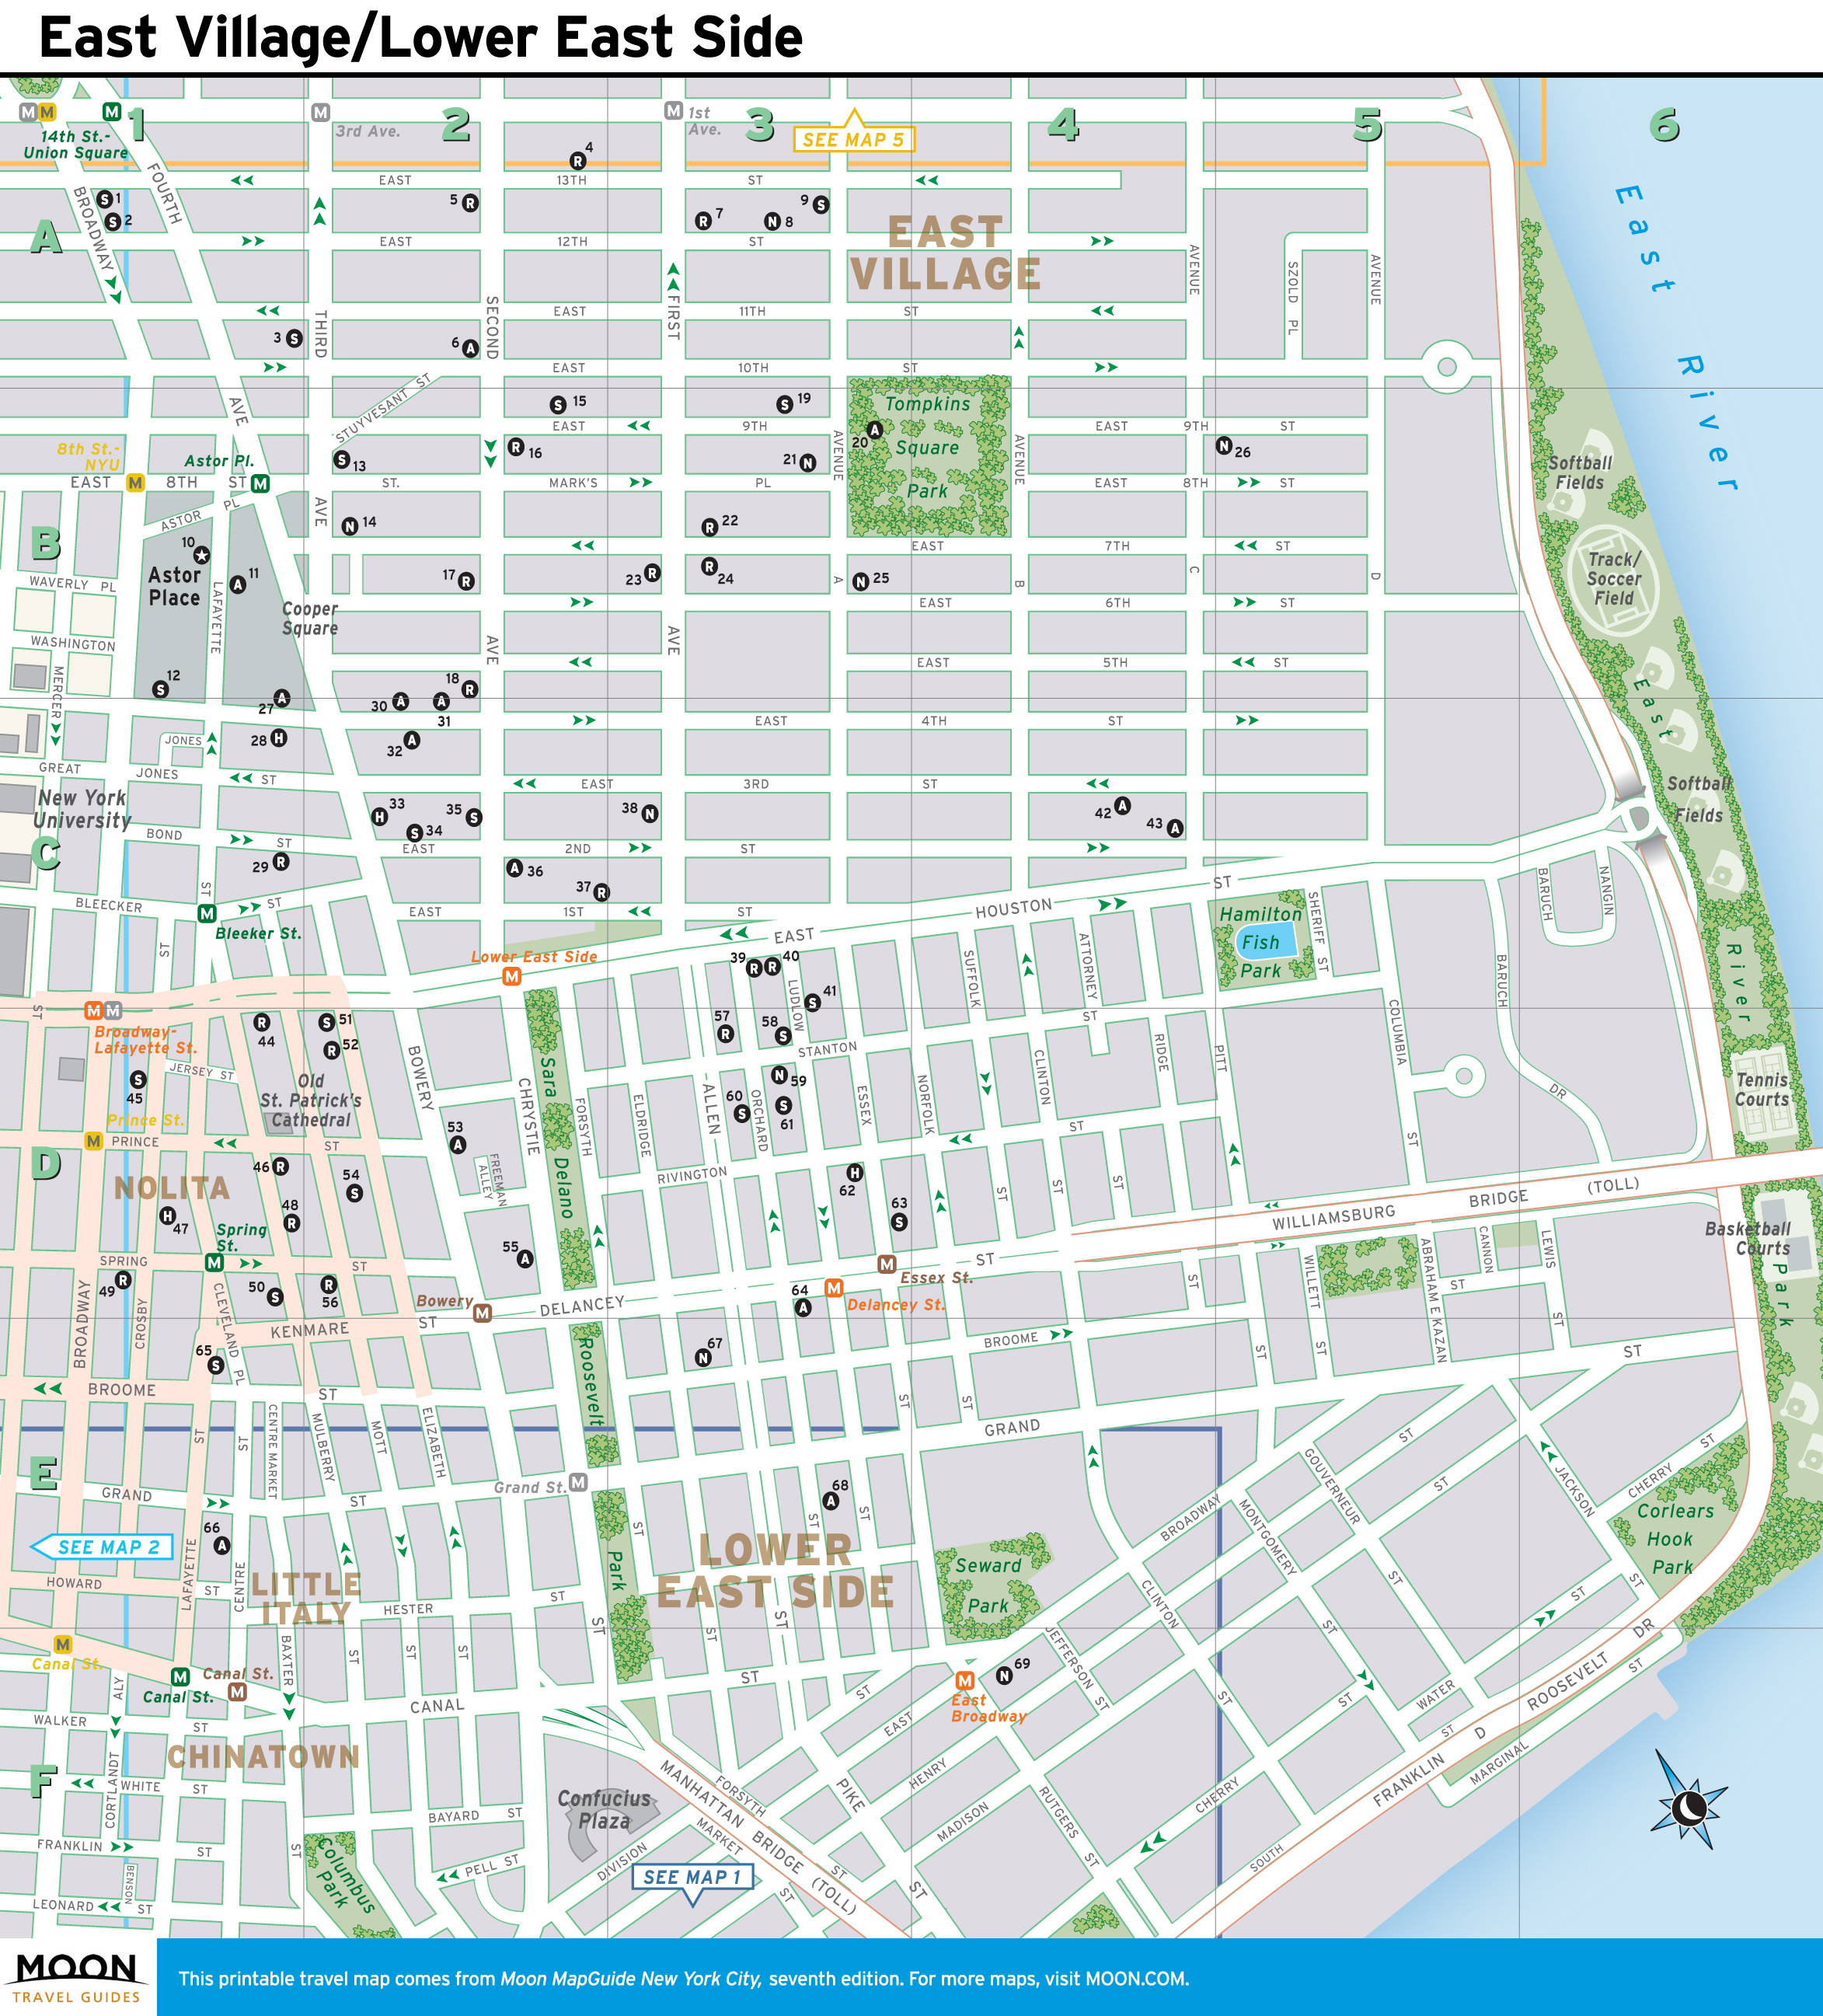 New York Maps | Moon Travel Guides Manhattan Boroughs Map on hell's kitchen map, manhattan street map, harlem new york map, manhattan is really an island, 5 burrows of new york map, 5 boroughs map, new york state area code map, manhattan city council map, five boroughs of ny map, manhattan map nyu, marble hill manhattan map, nyc map, dyckman manhattan map, new york boroughs map, new york ethnic neighborhood map, manhattan police department, manhattan ny map, manhattan new york, manhattan tourist map, bronx queens map,